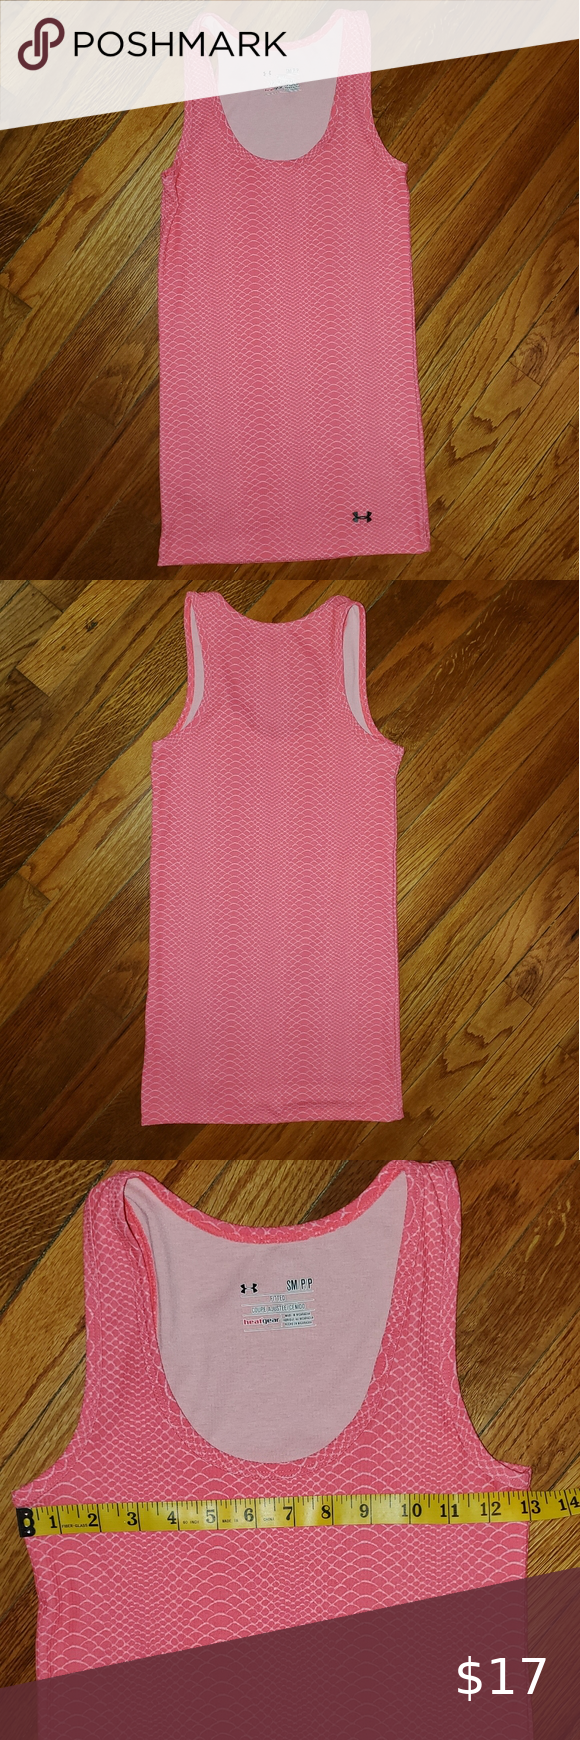 Under Armour heatgear snakeskin tank Like new excellend condition  Size small but runs a little small, it is snug    Pink snakeskin   Measurements are in pics above     #0202 Under Armour Tops